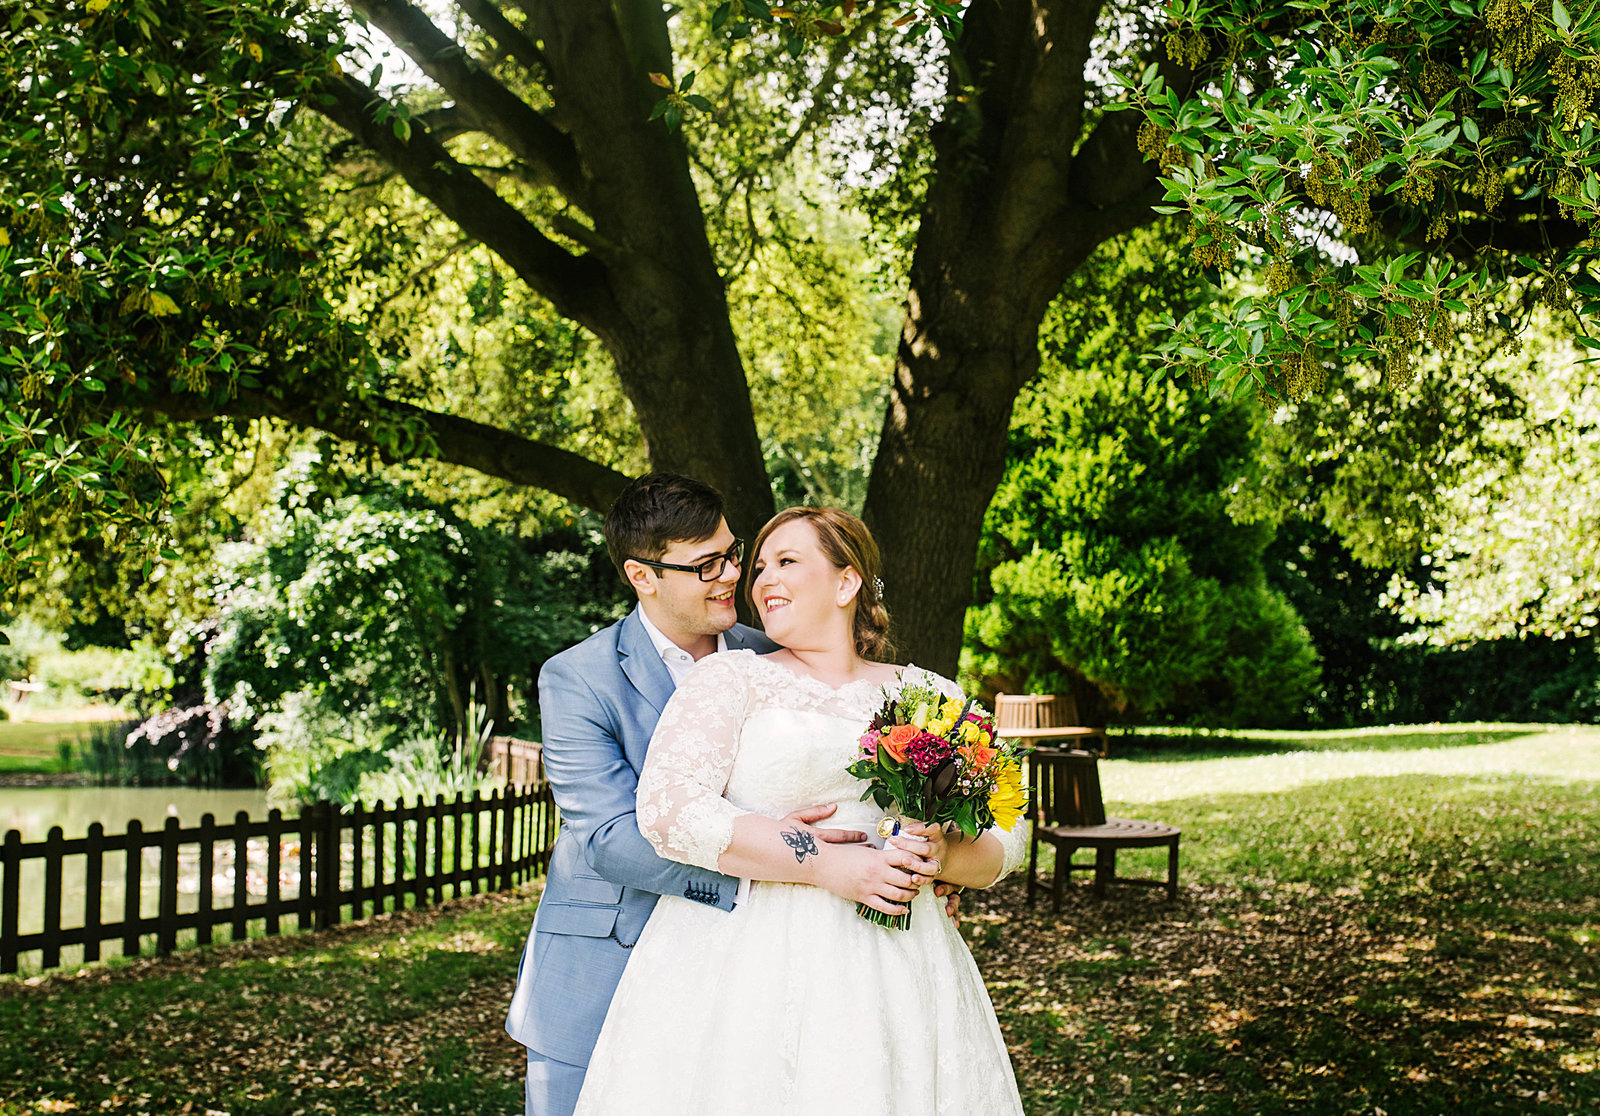 Nicola & Shanes Wedding-22nd June 2015-287